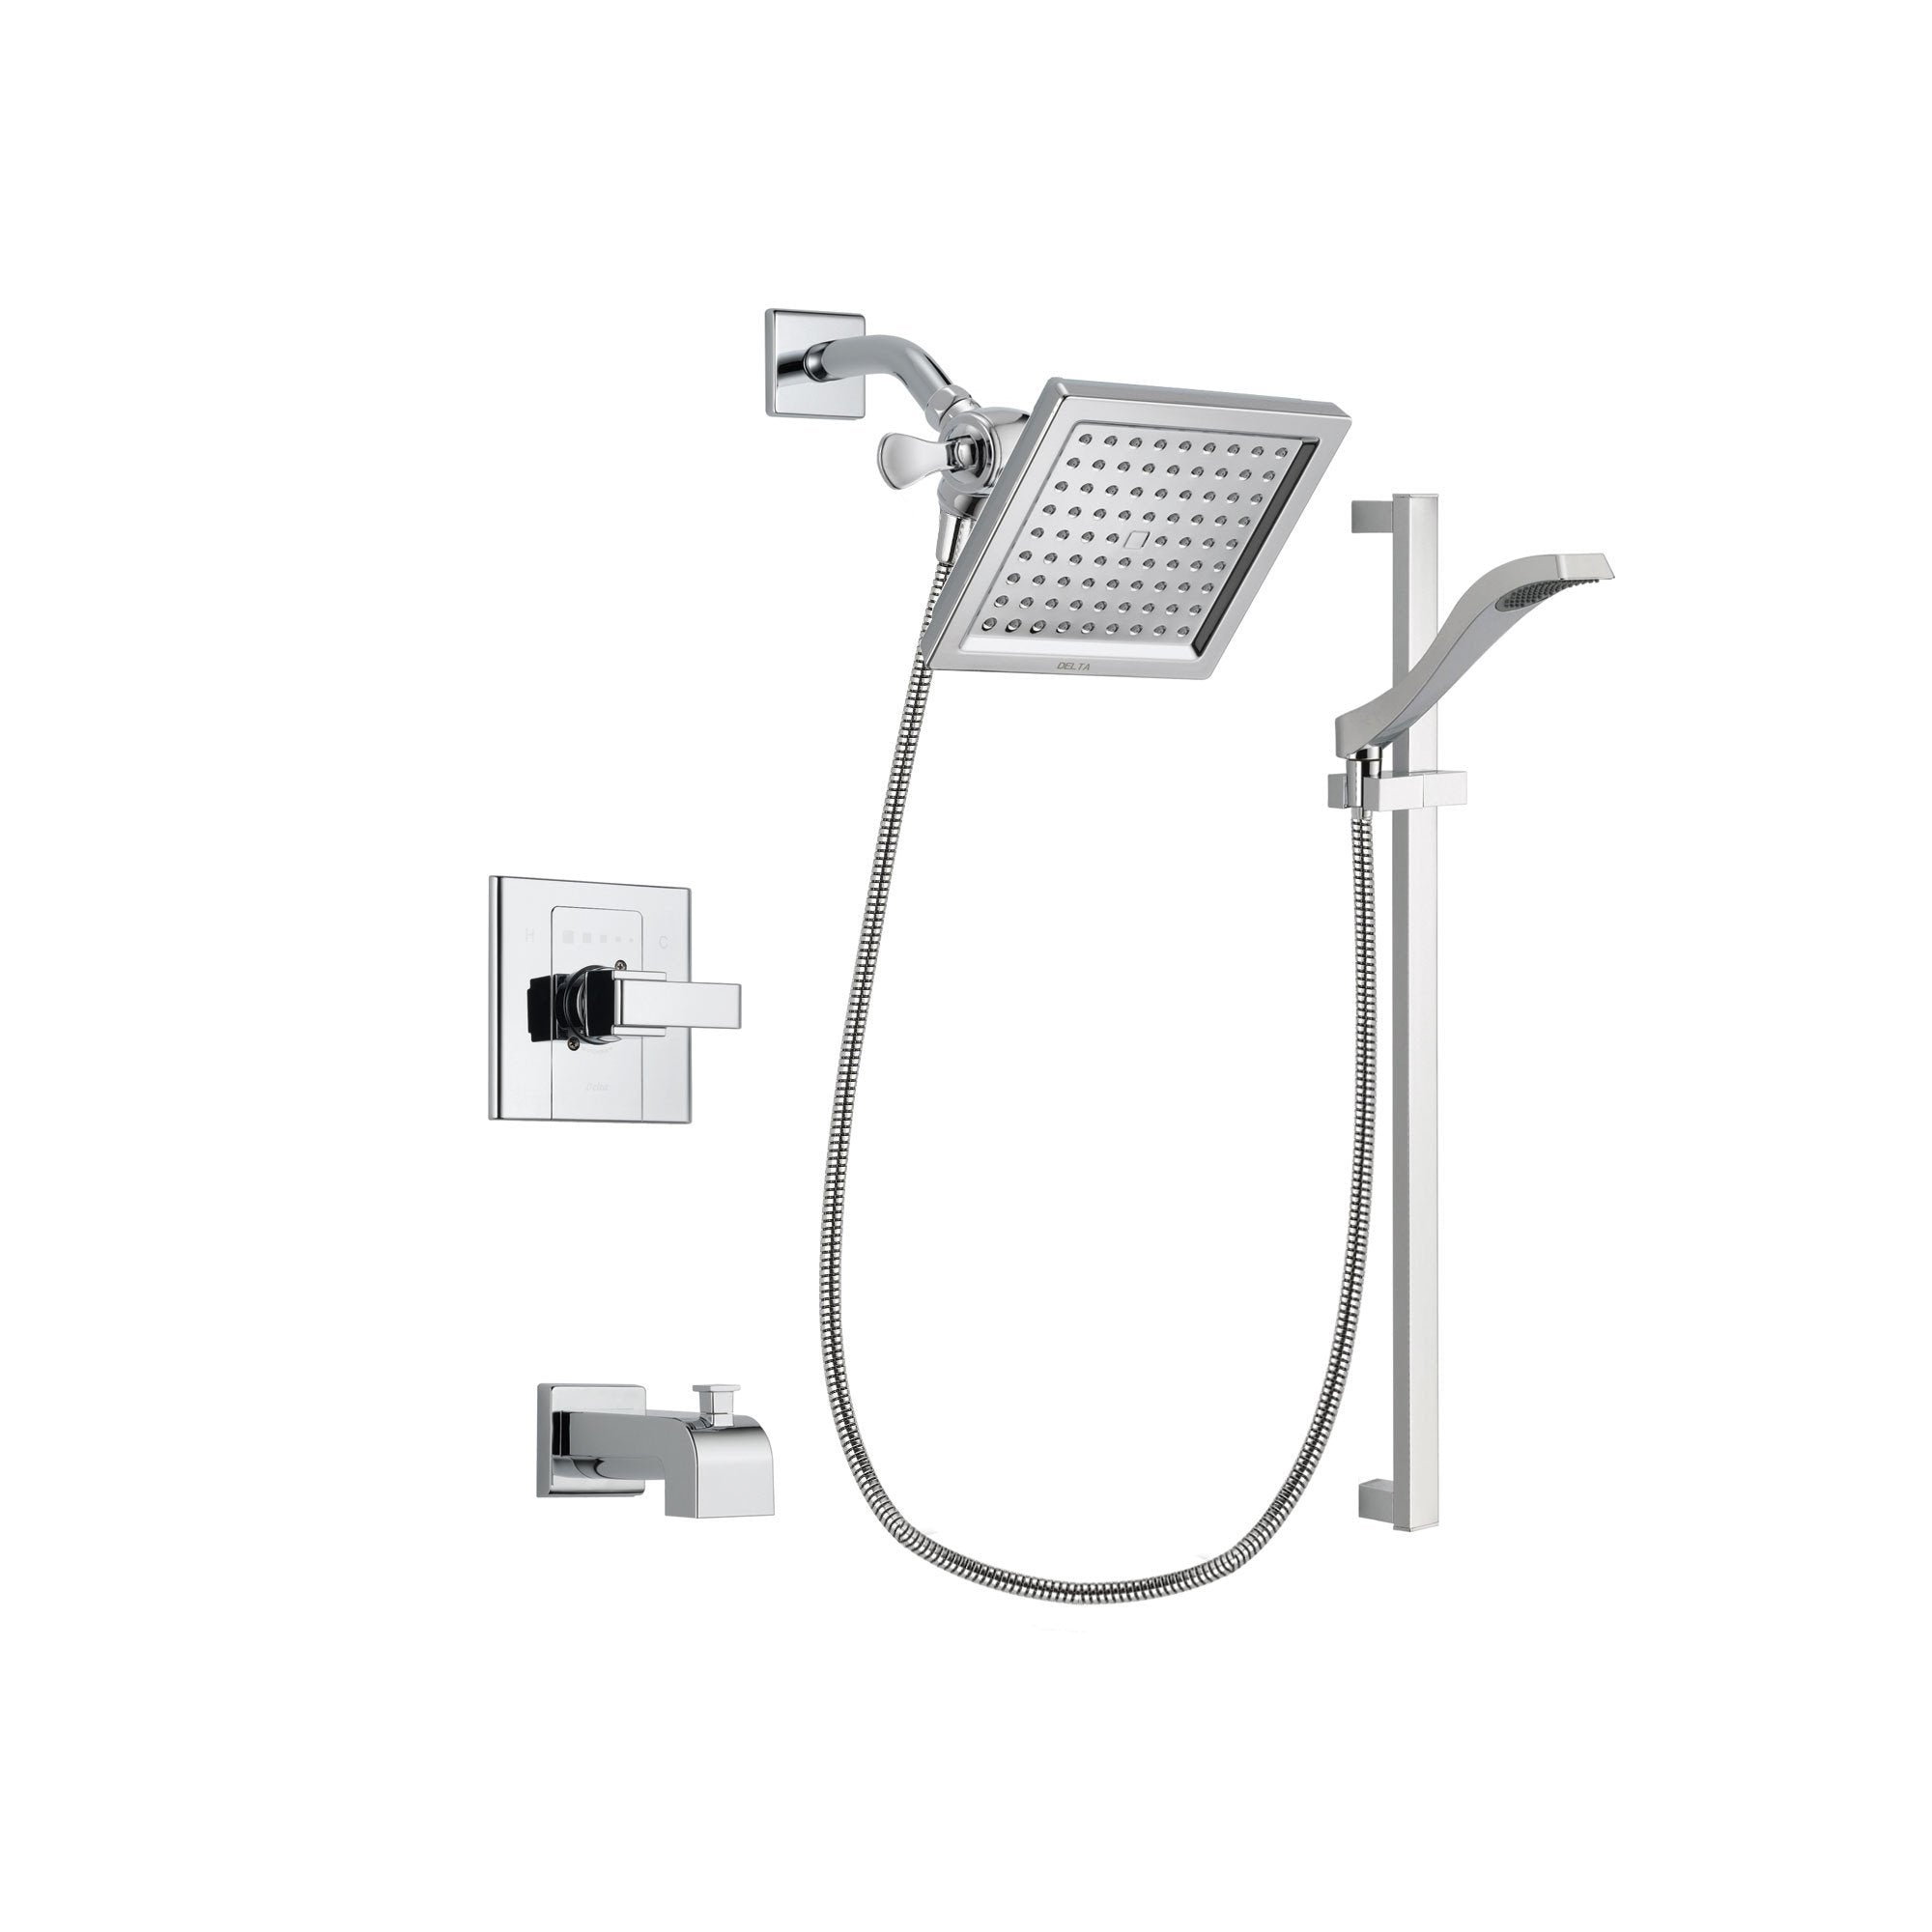 Delta Arzo Chrome Finish Tub and Shower Faucet System Package with 6.5-inch Square Rain Showerhead and Wall Mount Slide Bar with Handheld Shower Spray Includes Rough-in Valve and Tub Spout DSP0171V